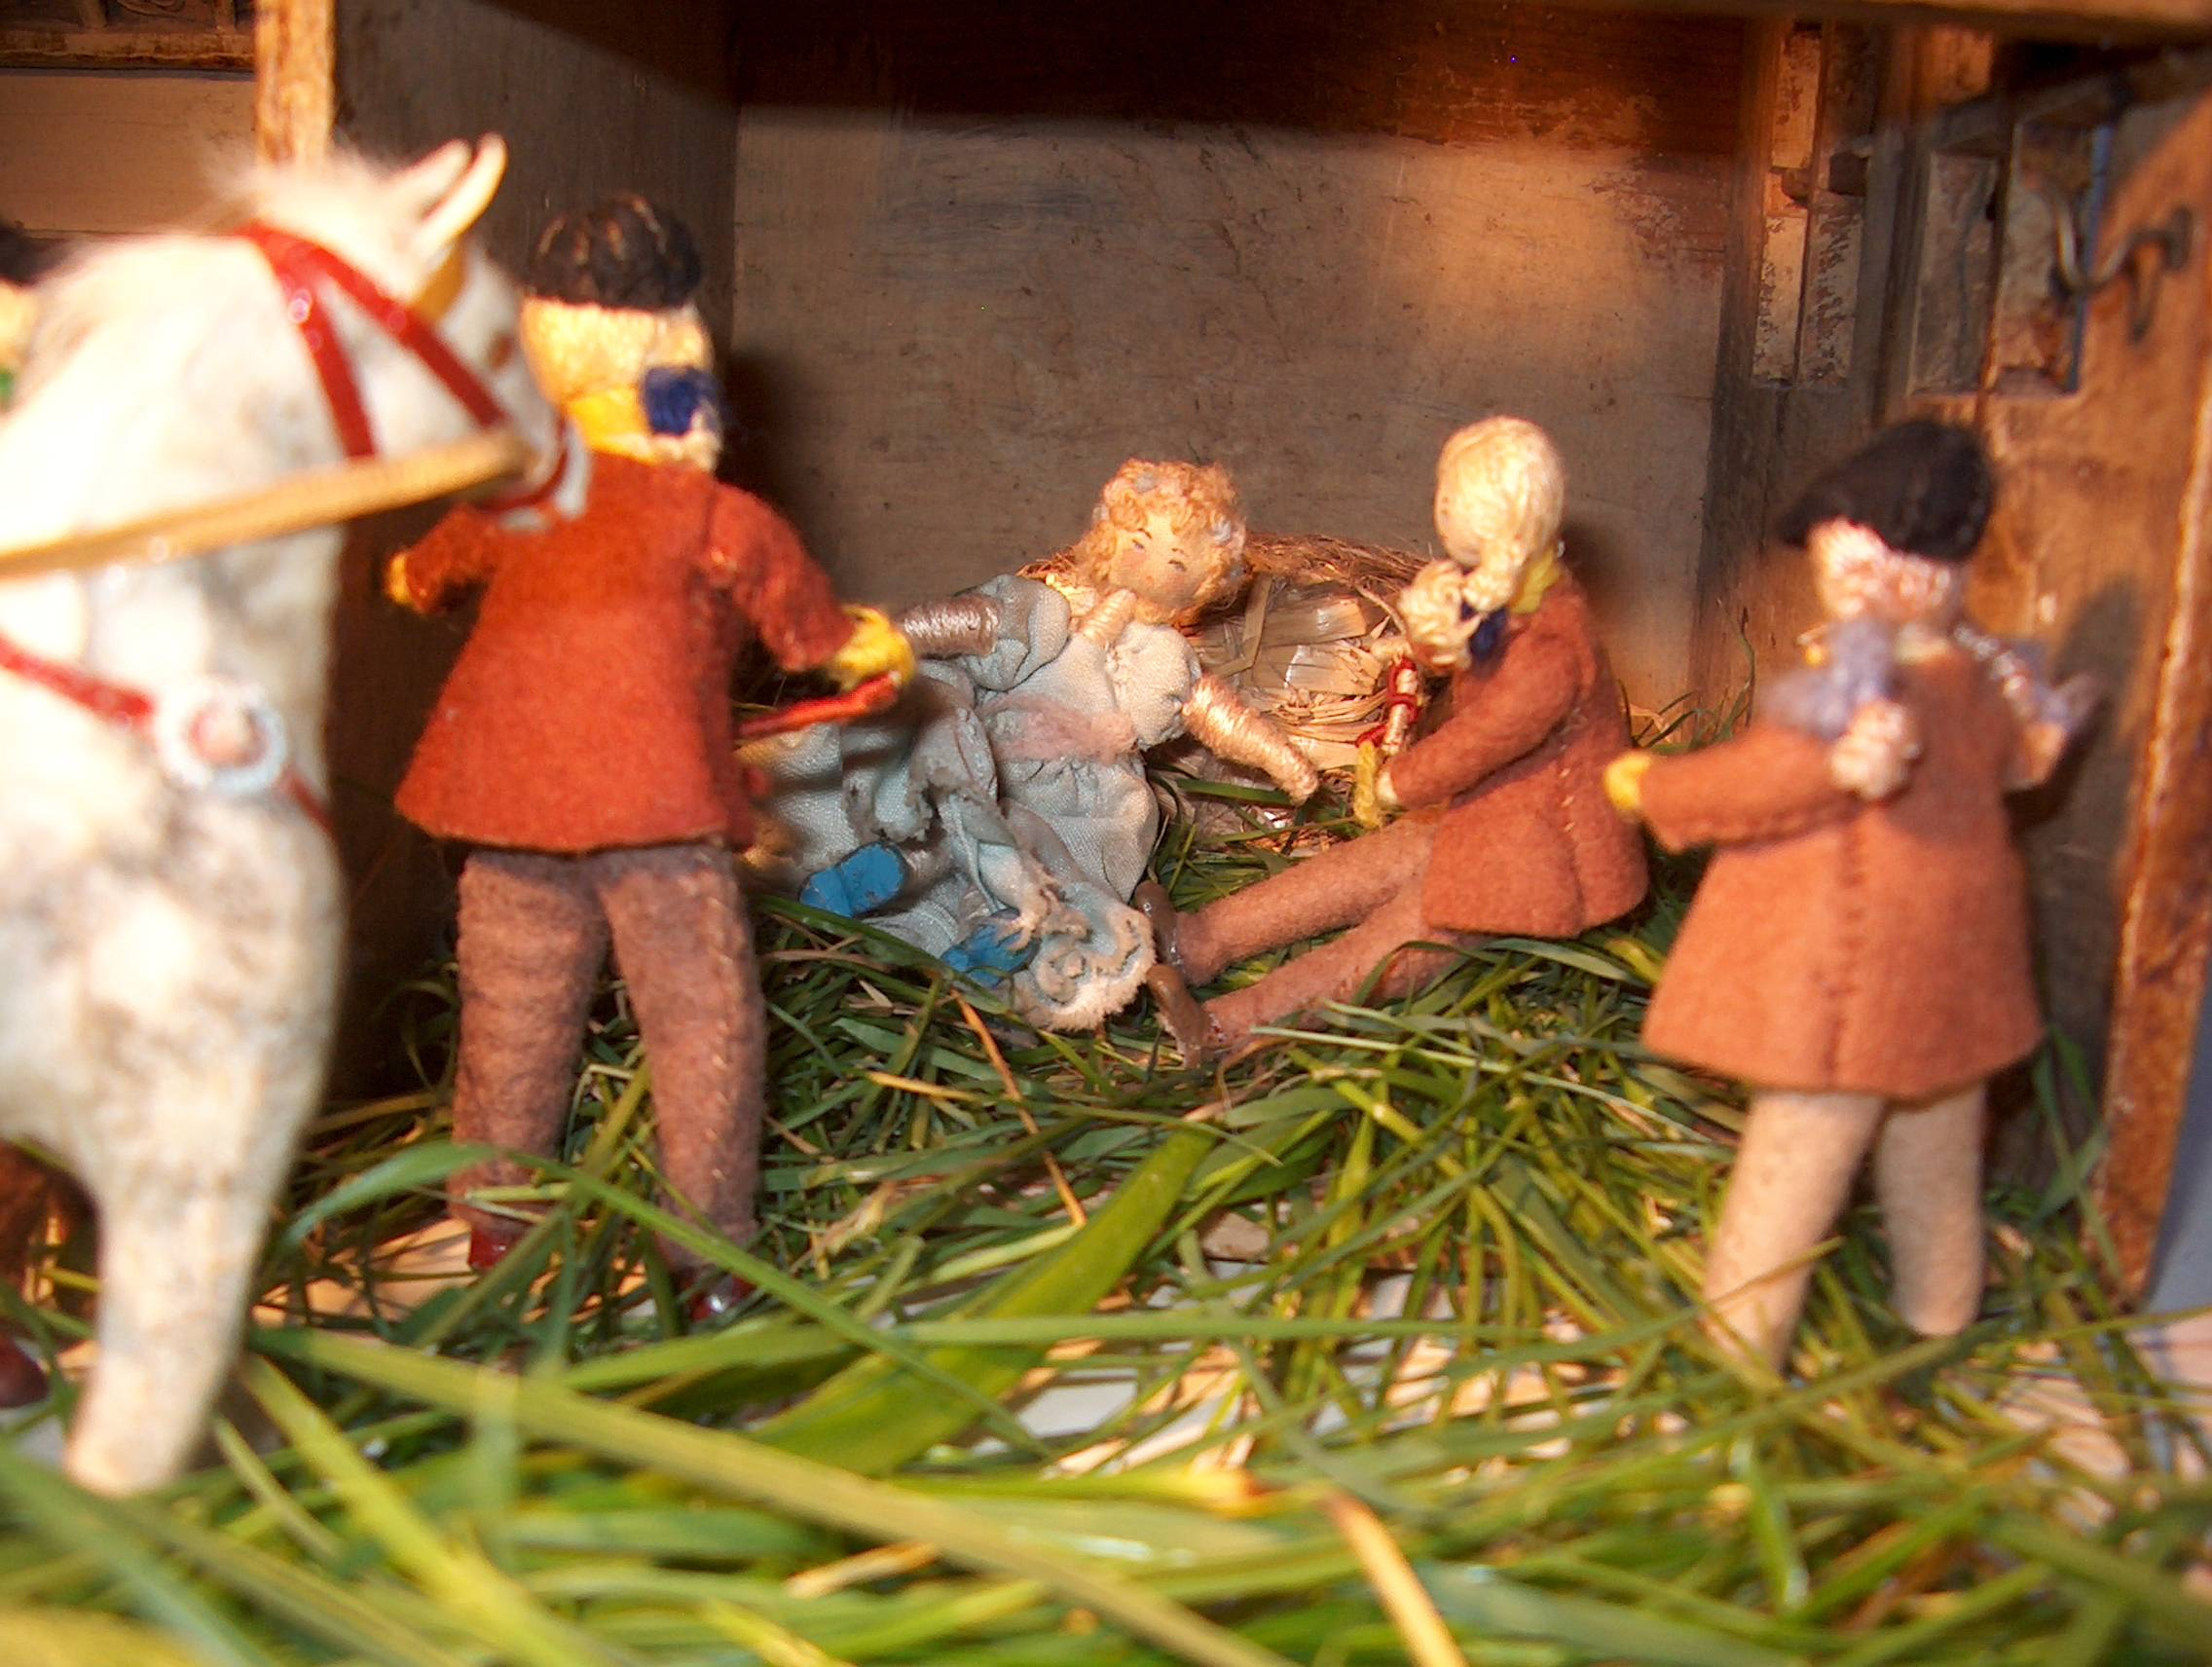 Suddenly, from the pile of hay behind her, there came the sound of coughing and spluttering.